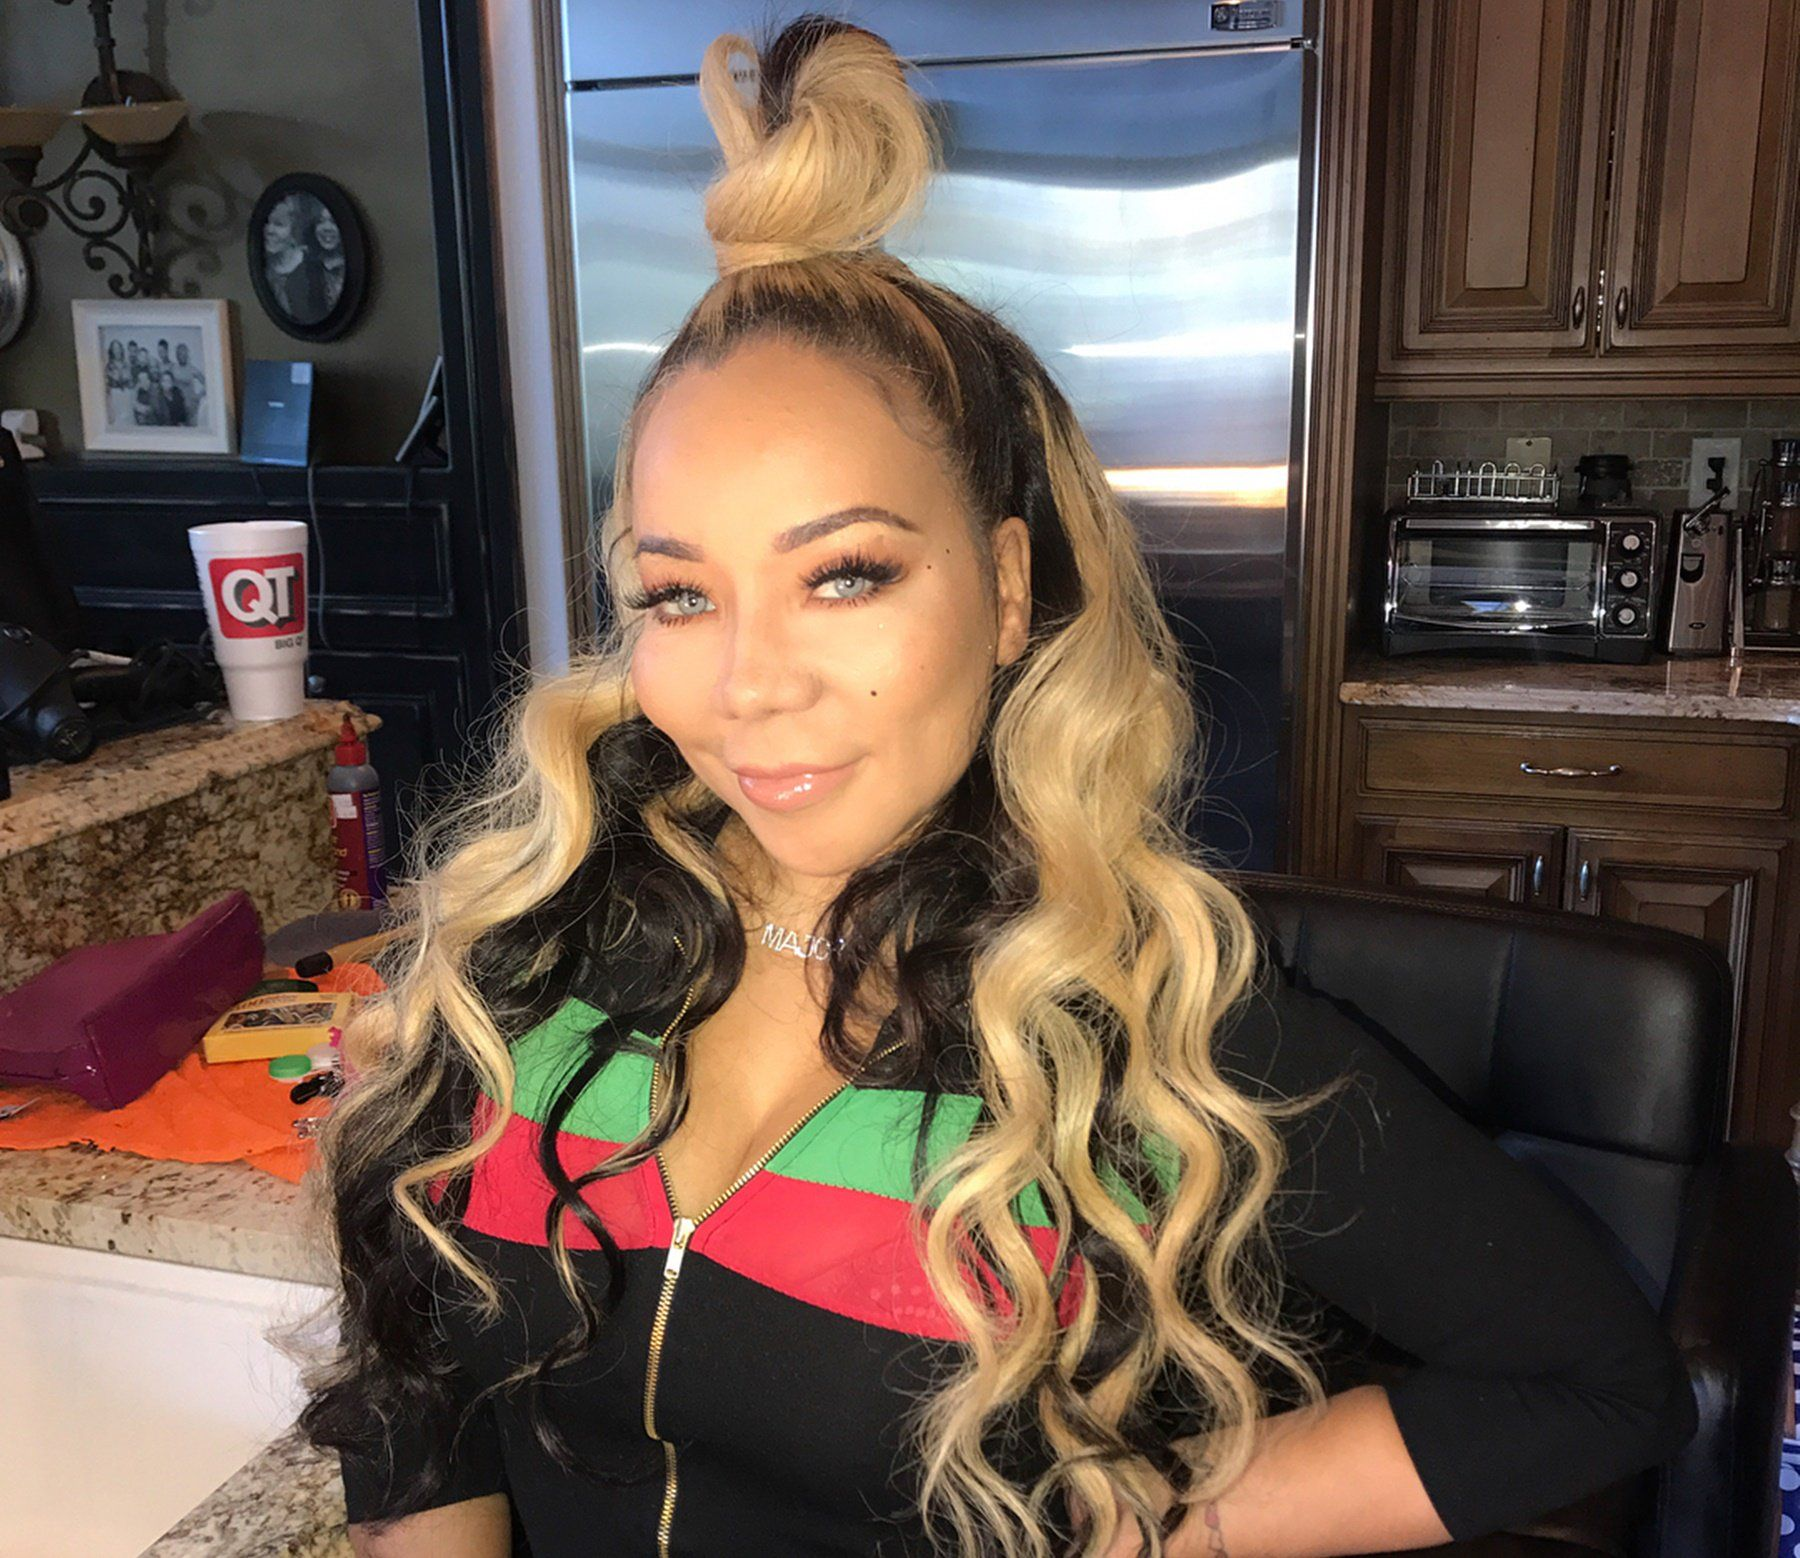 tiny harris was not sure about marrying t.i. for this reason